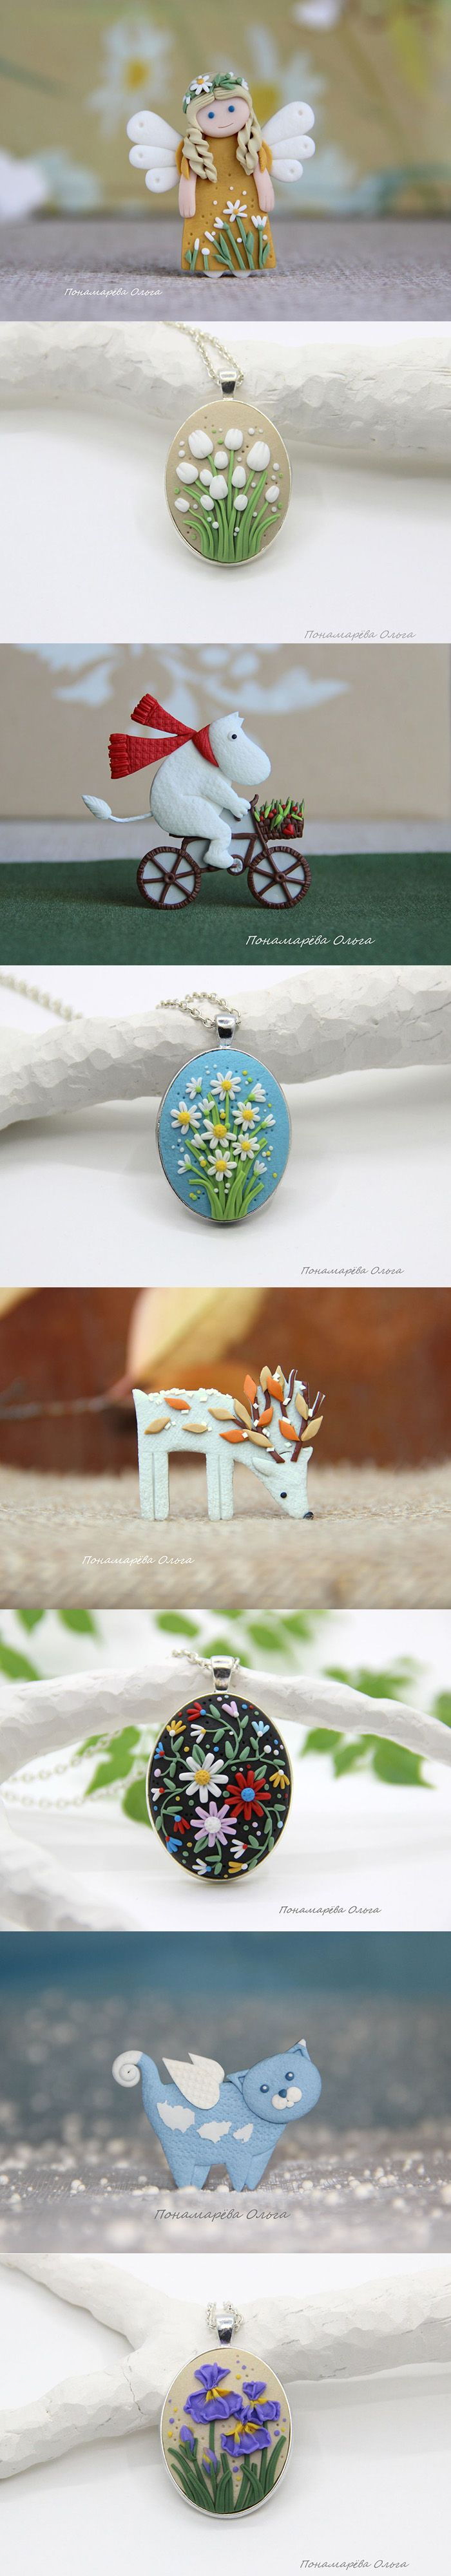 Pretty polymer clay jewelry pieces by Olga Ponamaryova